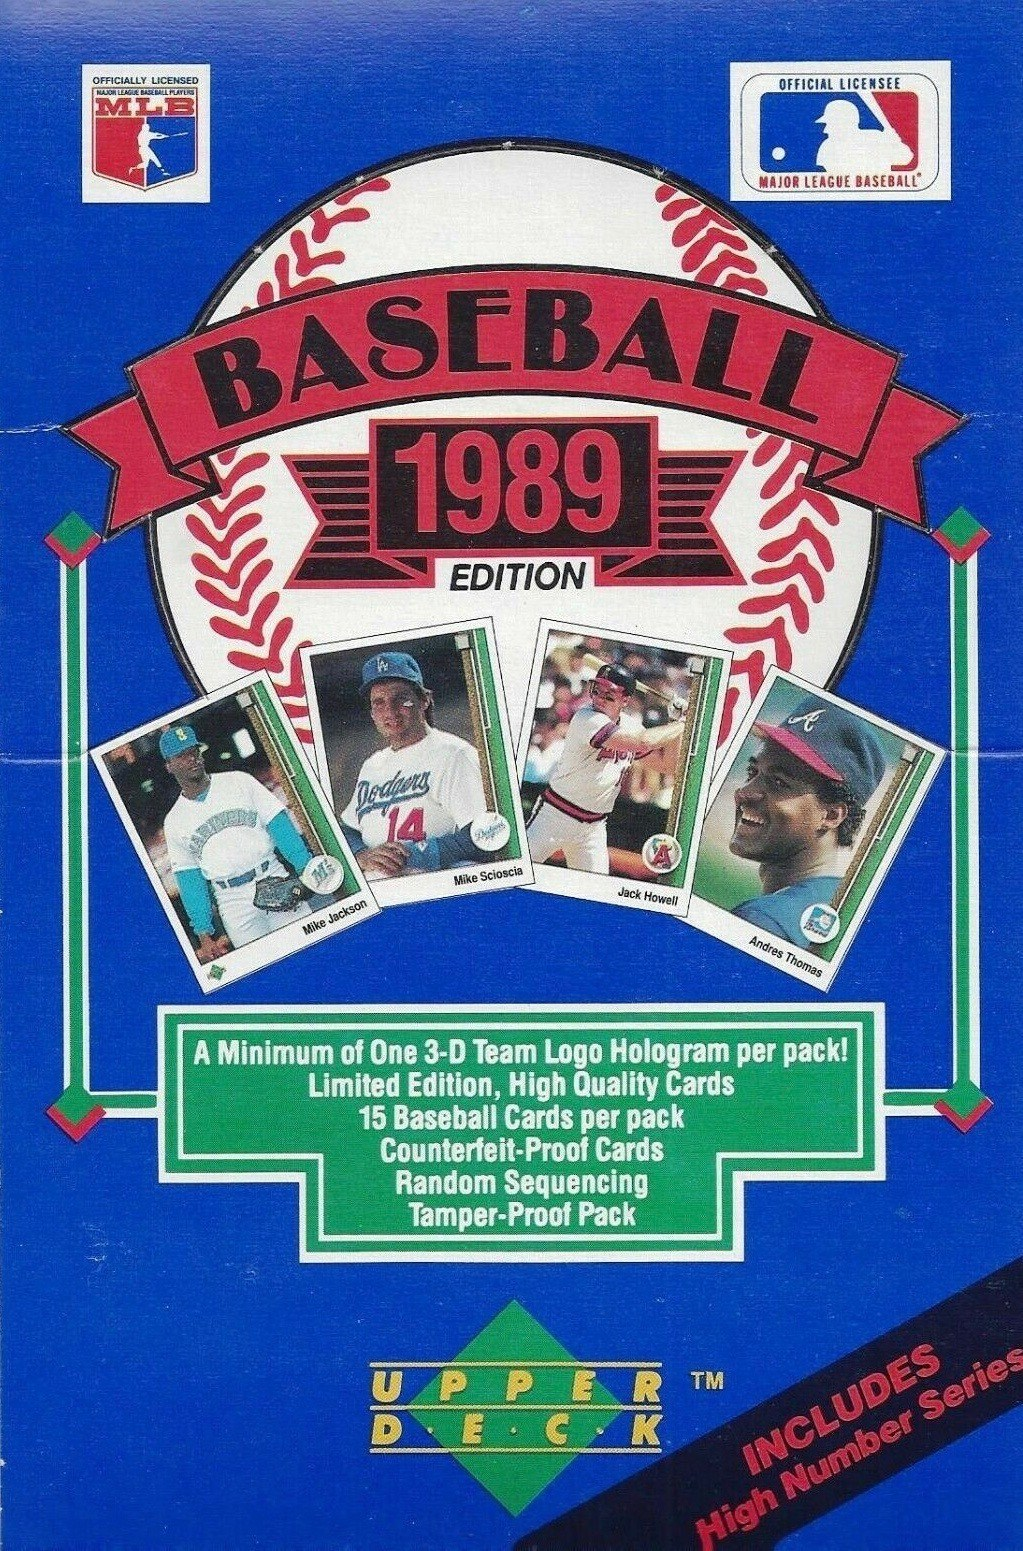 Original Unopened Box of 1989 Upper Deck Baseball Cards